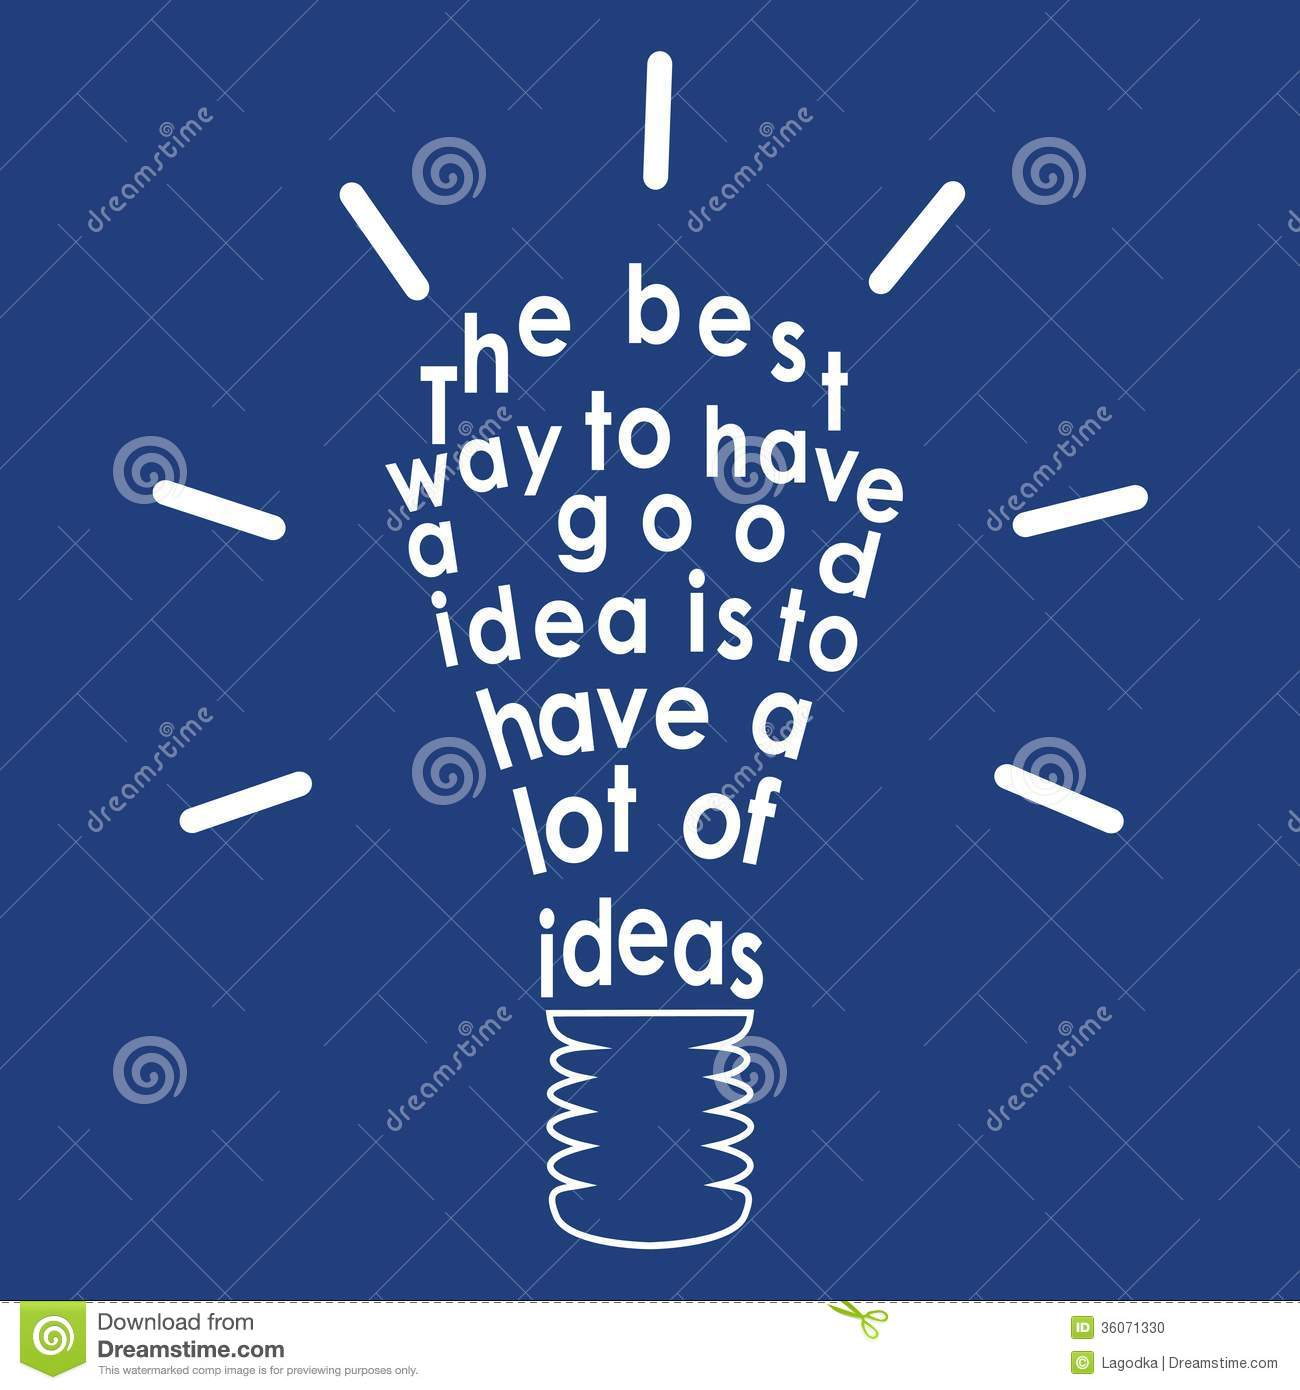 Quotes Light Light Bulb With A Quotevector Stock Vector  Image 36071330